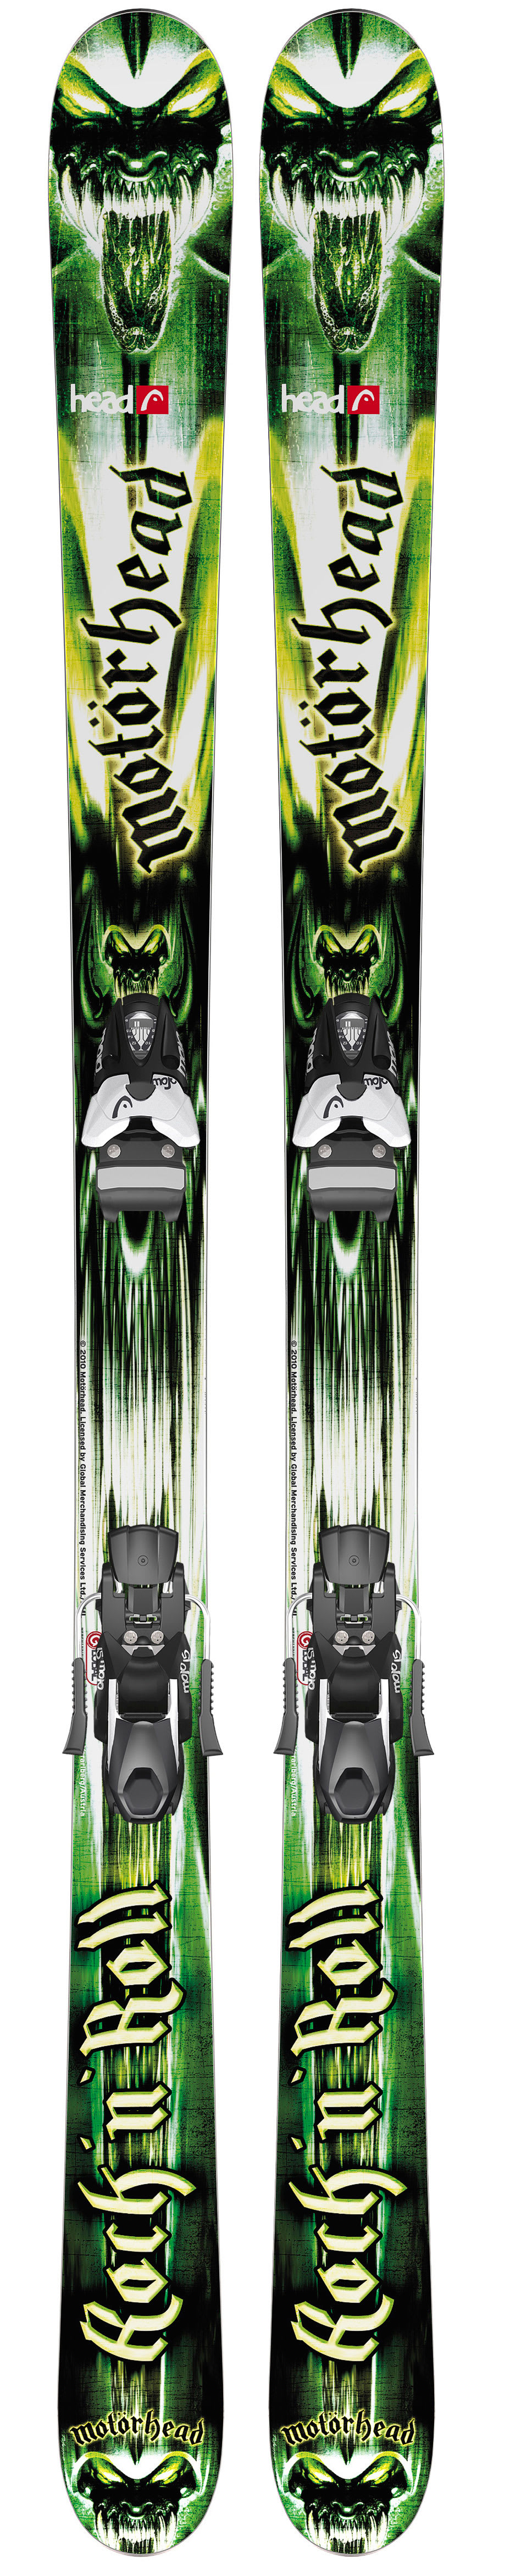 Shop for Head Rock'n Roll 94 Skis w/ Mojo 12 Wide Bindings Matte Black/Silver 97mm - Men's